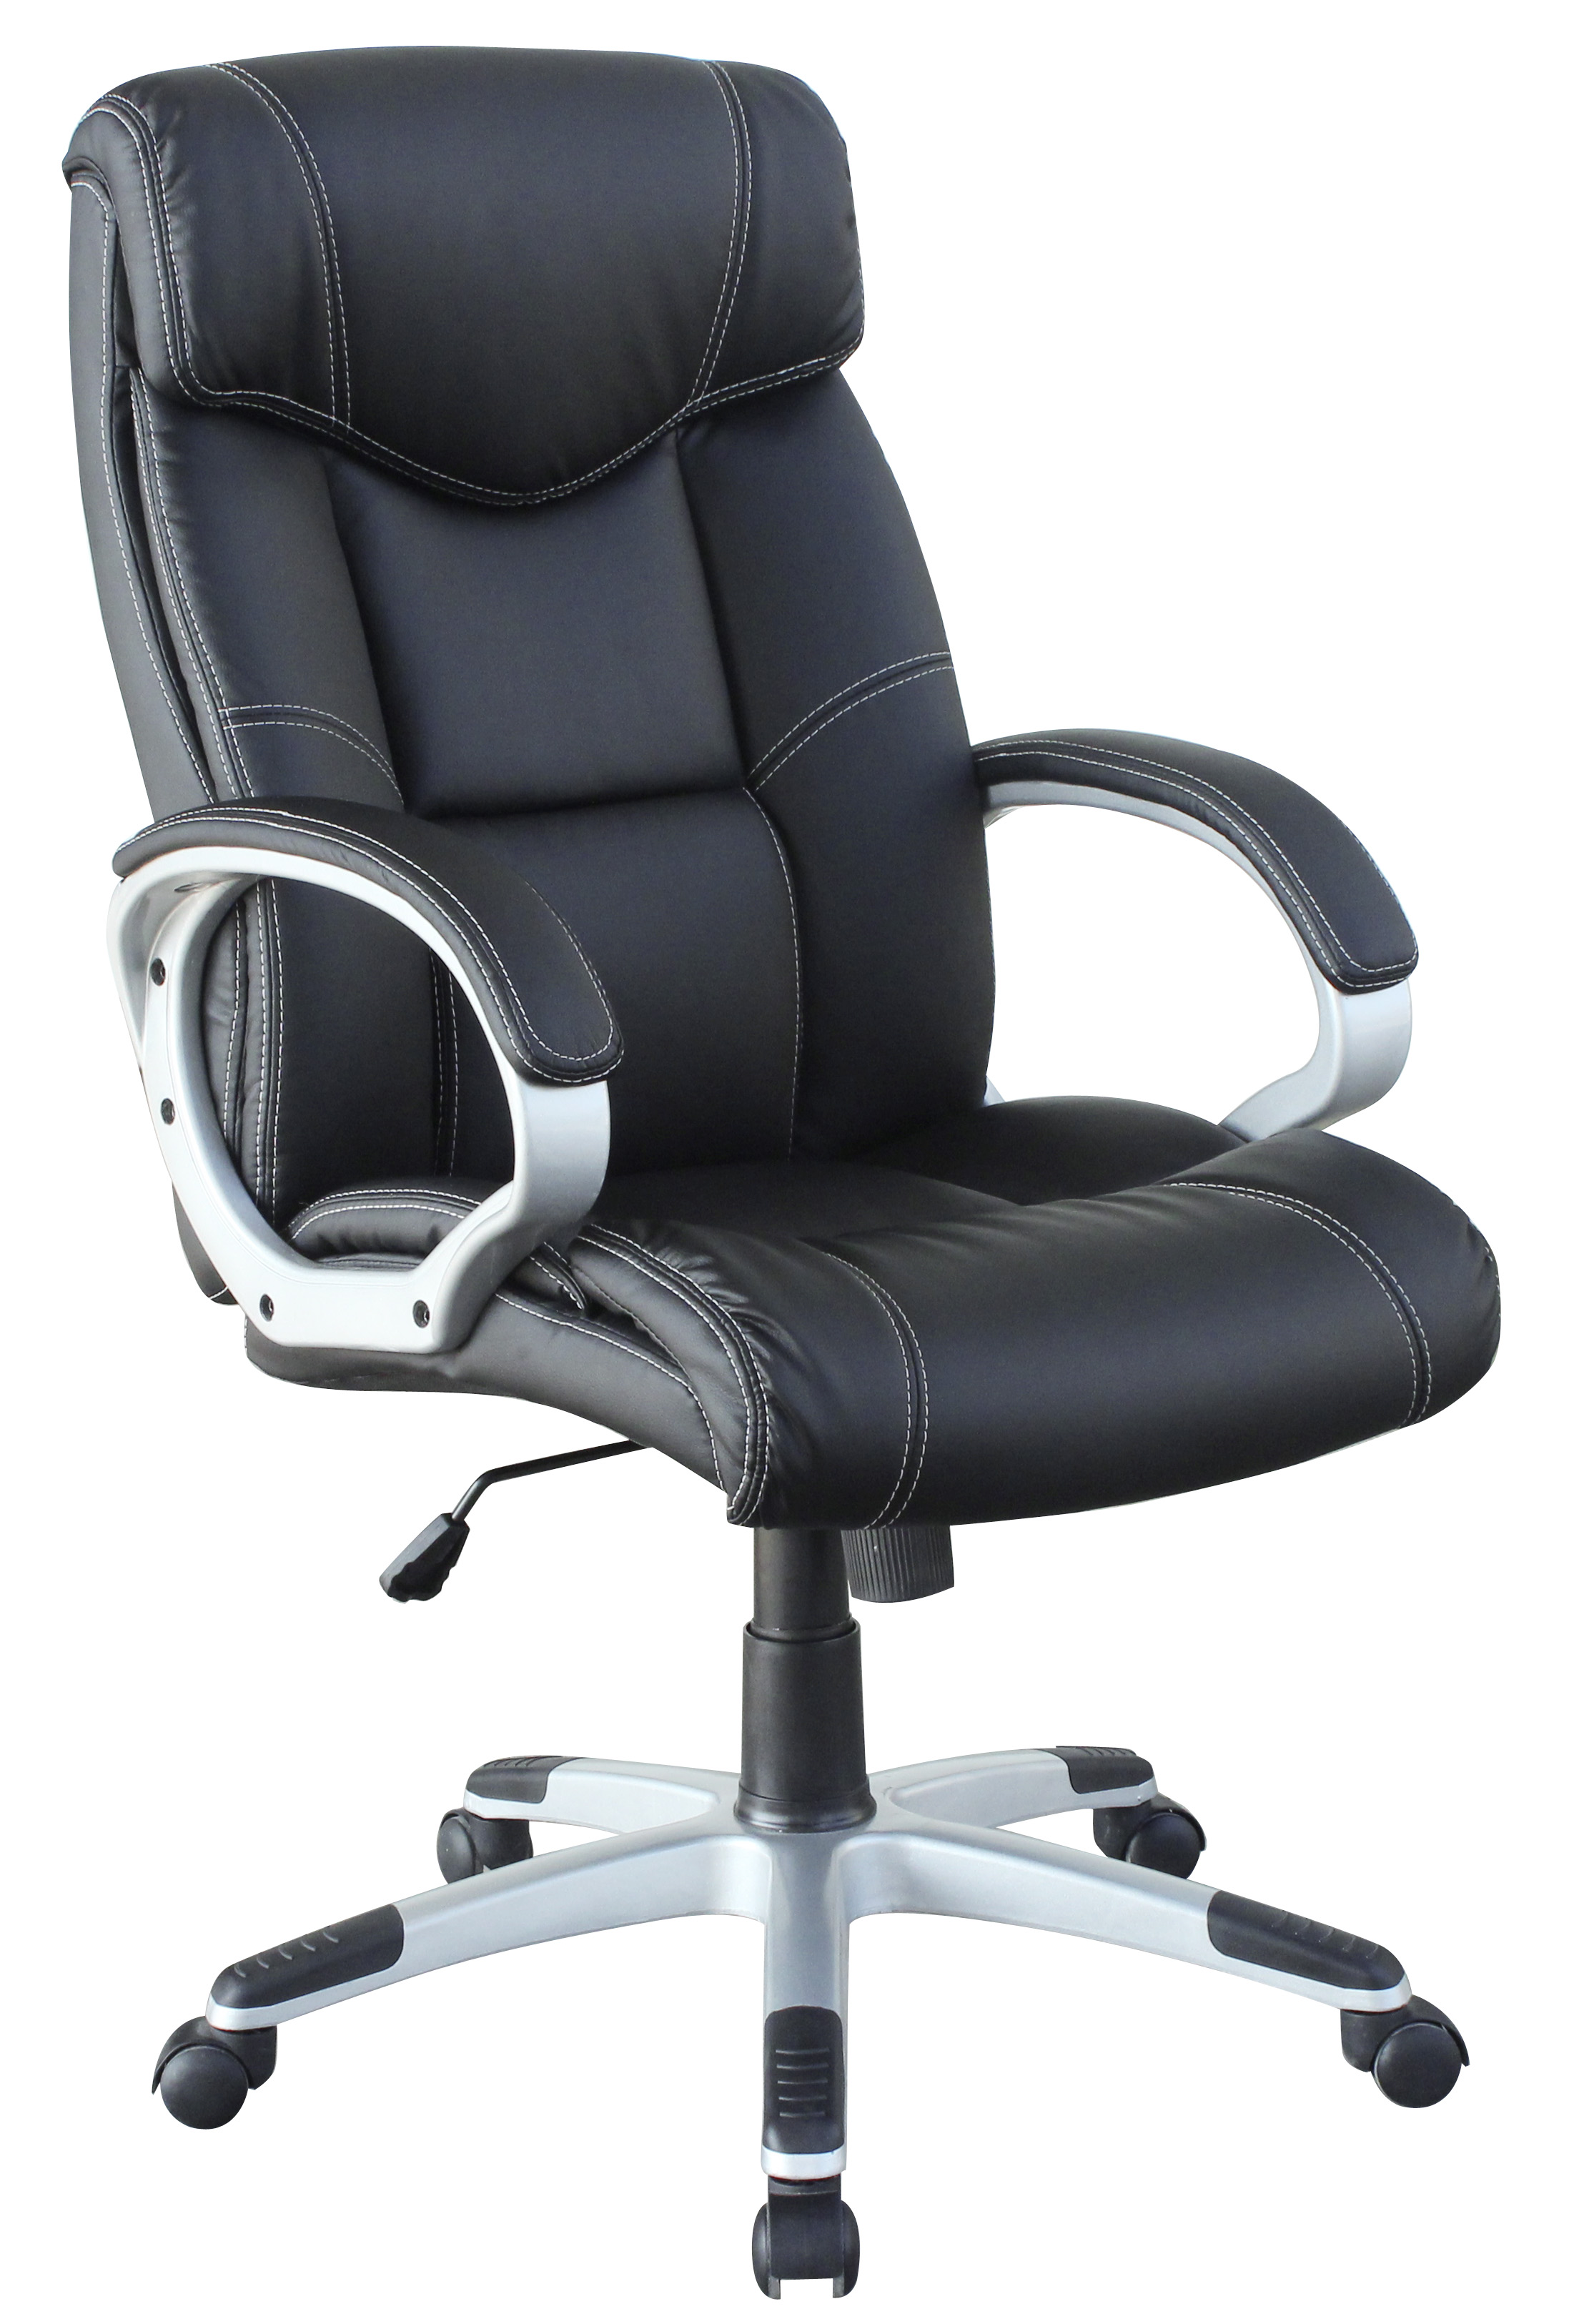 New Design Hot Selling Full Cream Half PU High Quality Office Chair